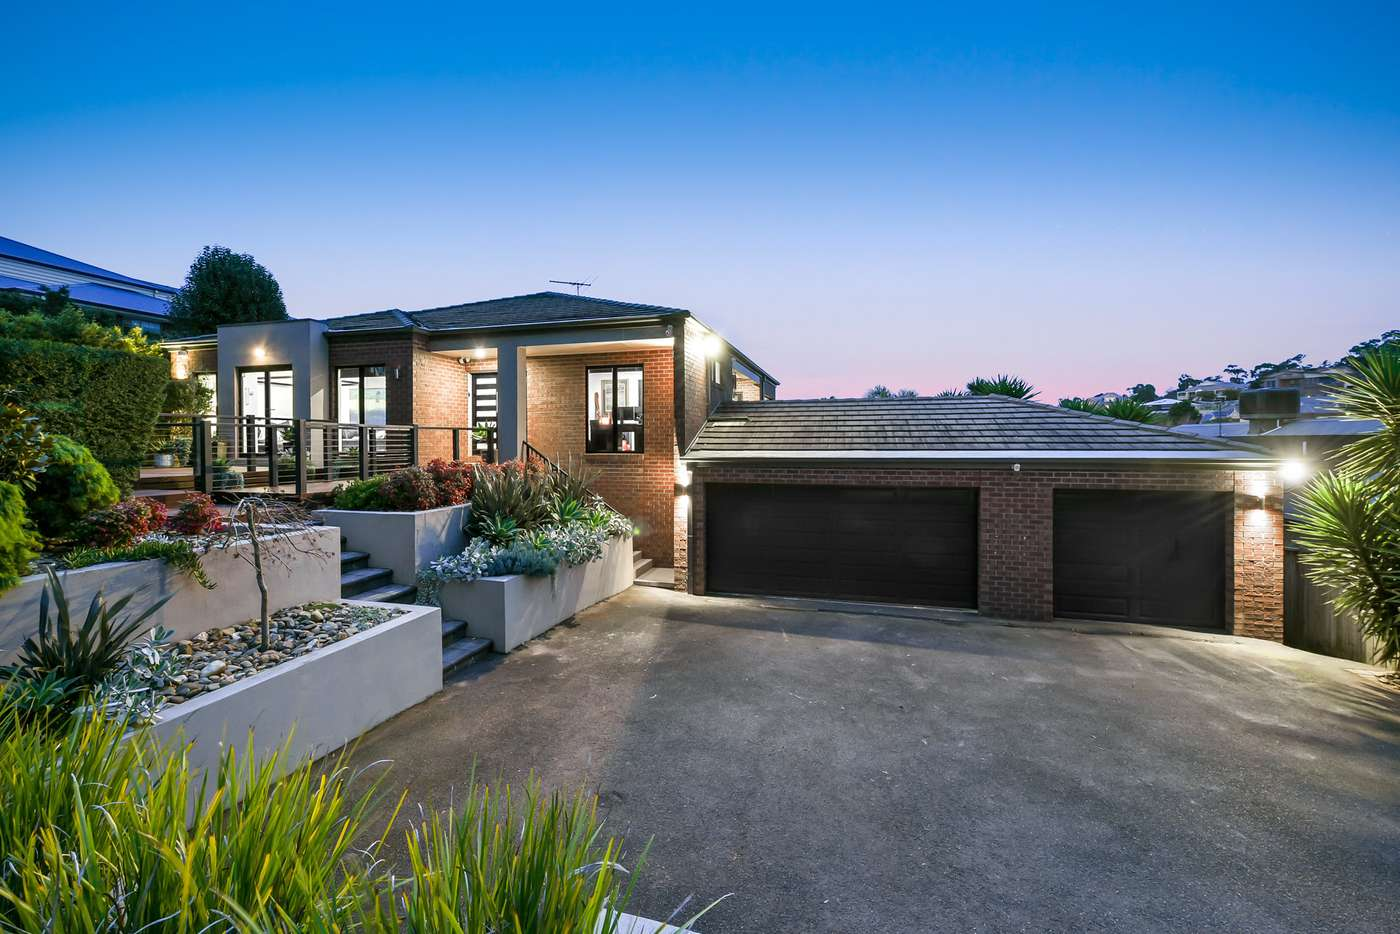 Main view of Homely house listing, 19 Tranquillity Place, Beaconsfield VIC 3807